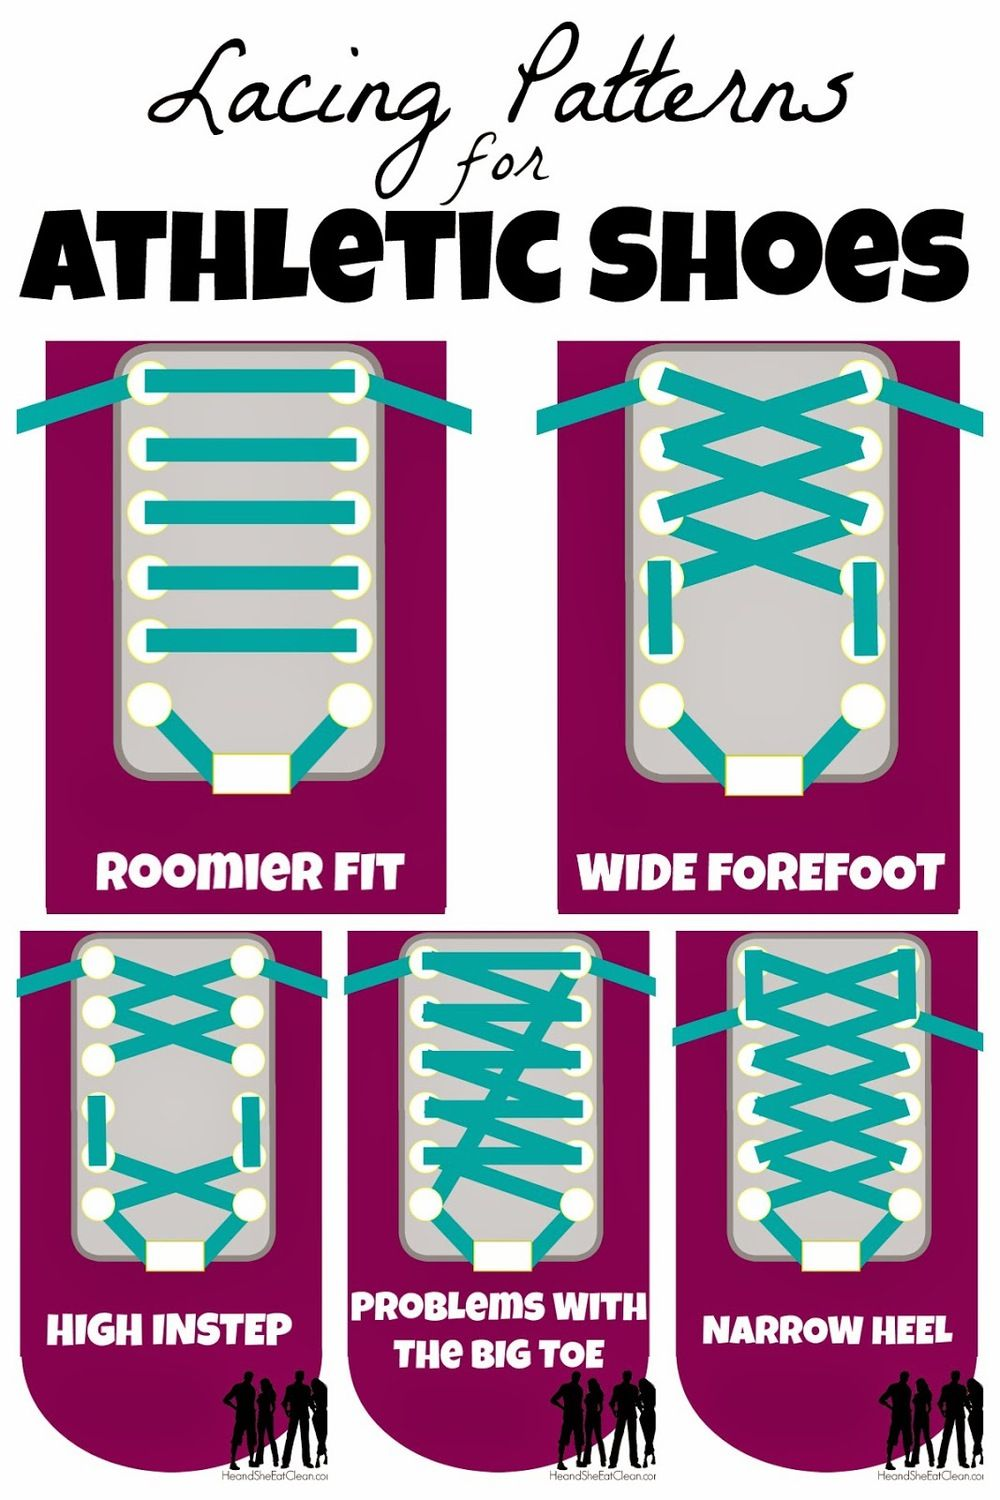 How To Lace Running Shoes For Low Arches